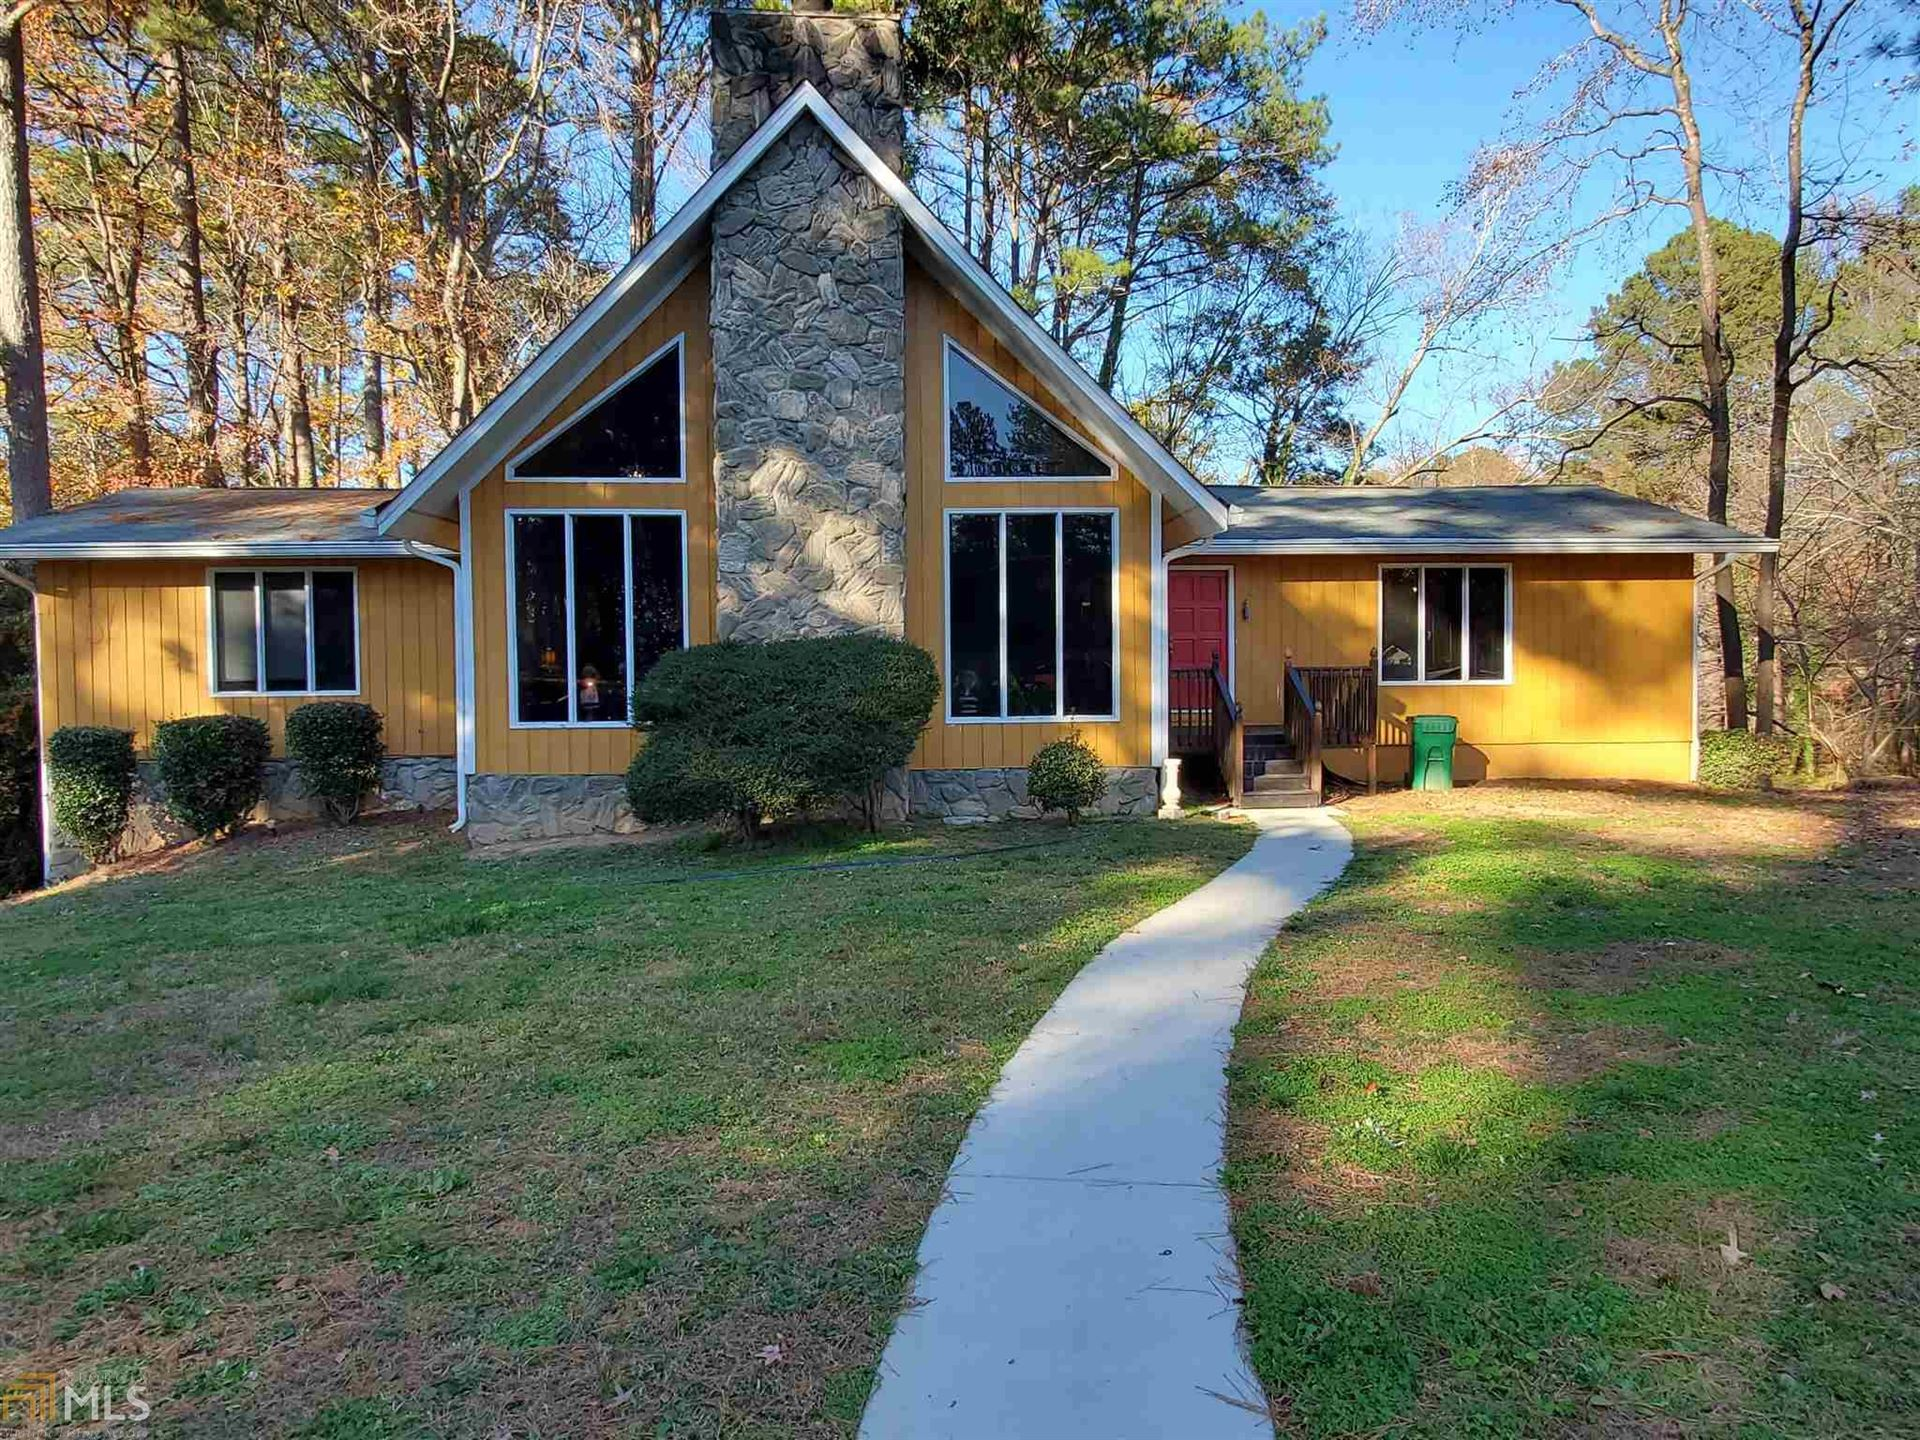 3856 Tawny Birch Ct, Decatur, GA 30034 - MLS#: 8903666